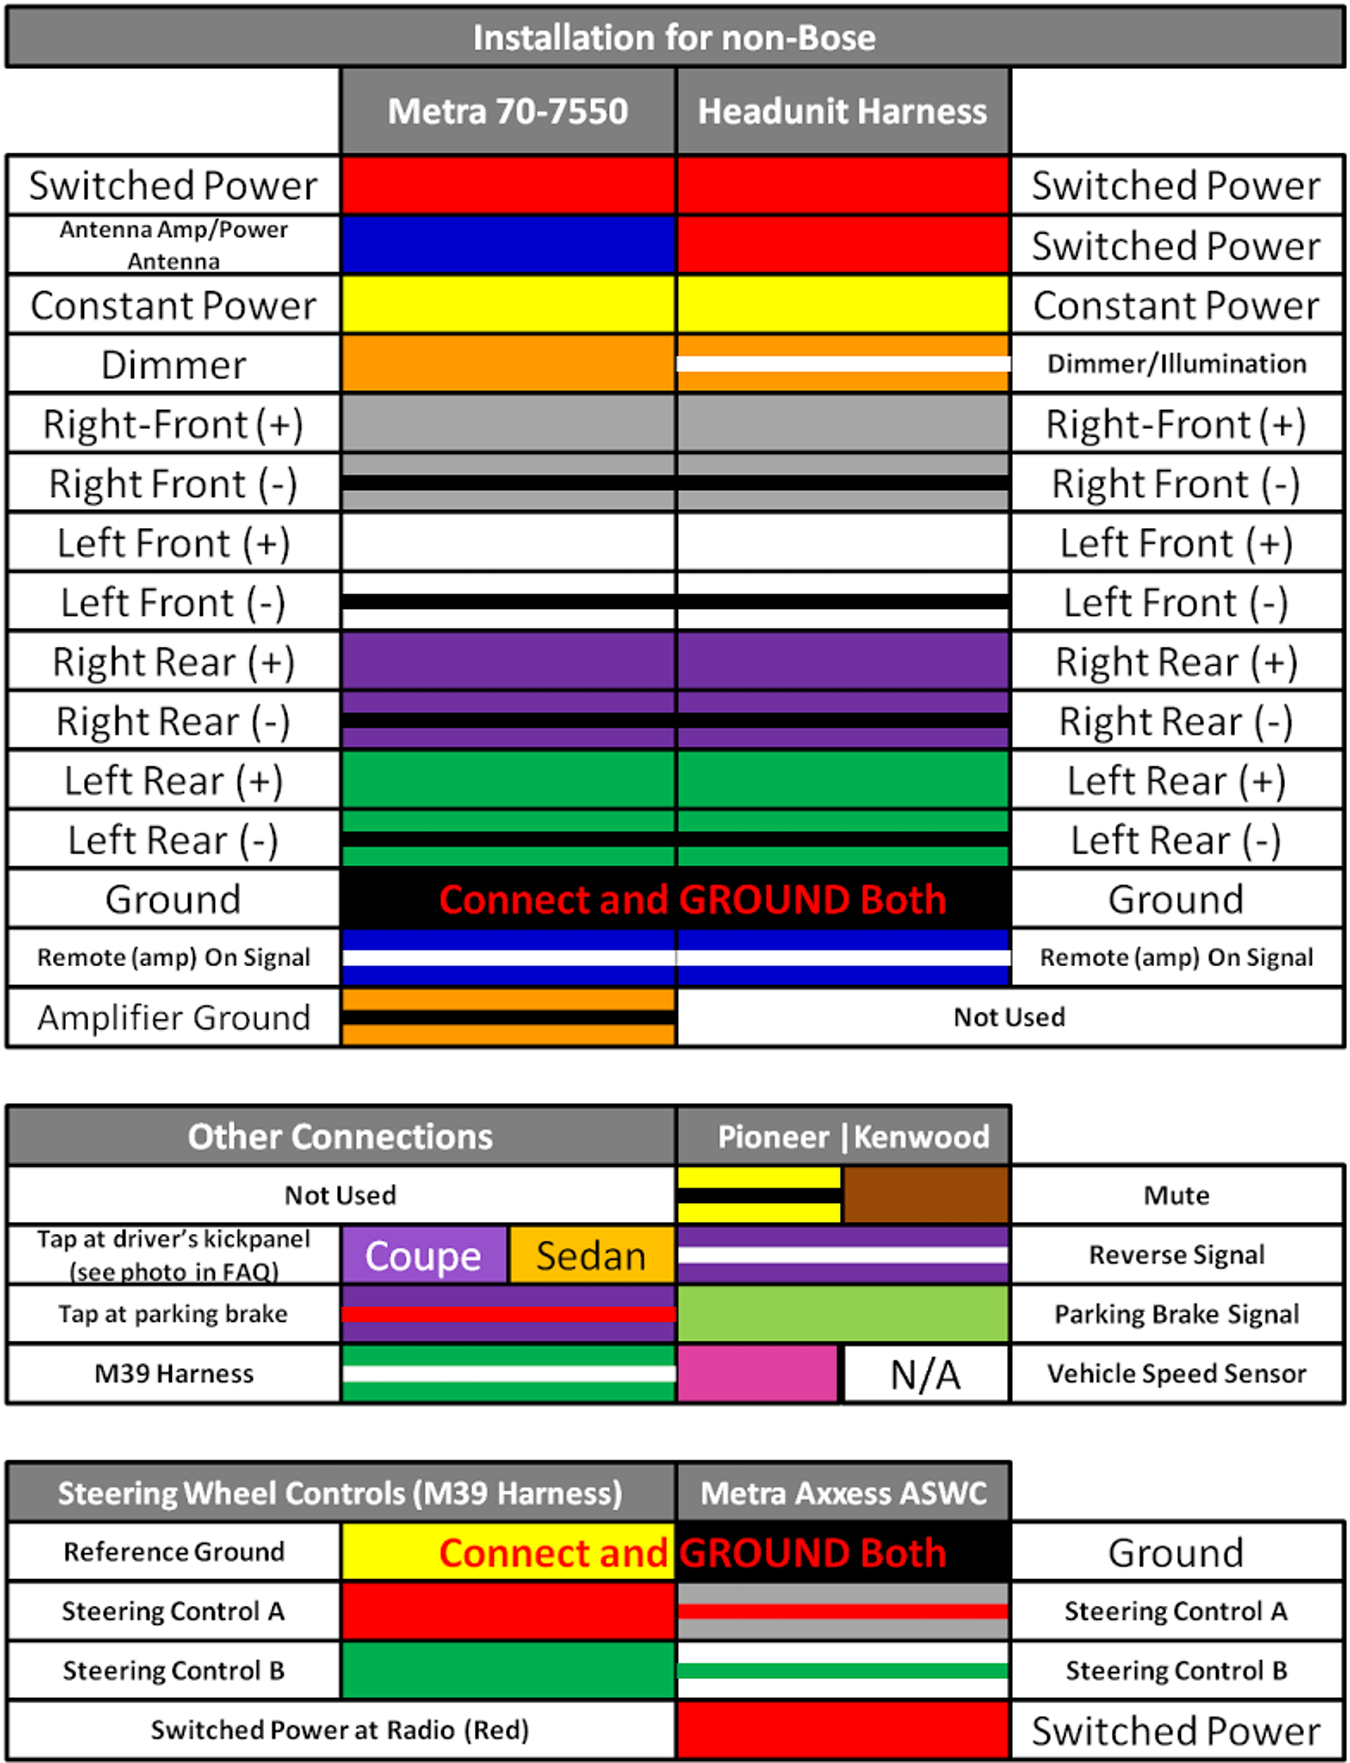 Gm Wiring Harness Color Codes : wiring, harness, color, codes, Wiring, Color, Codes, Diagram, Bounce-runner, Bounce-runner.ristorantebotticella.it